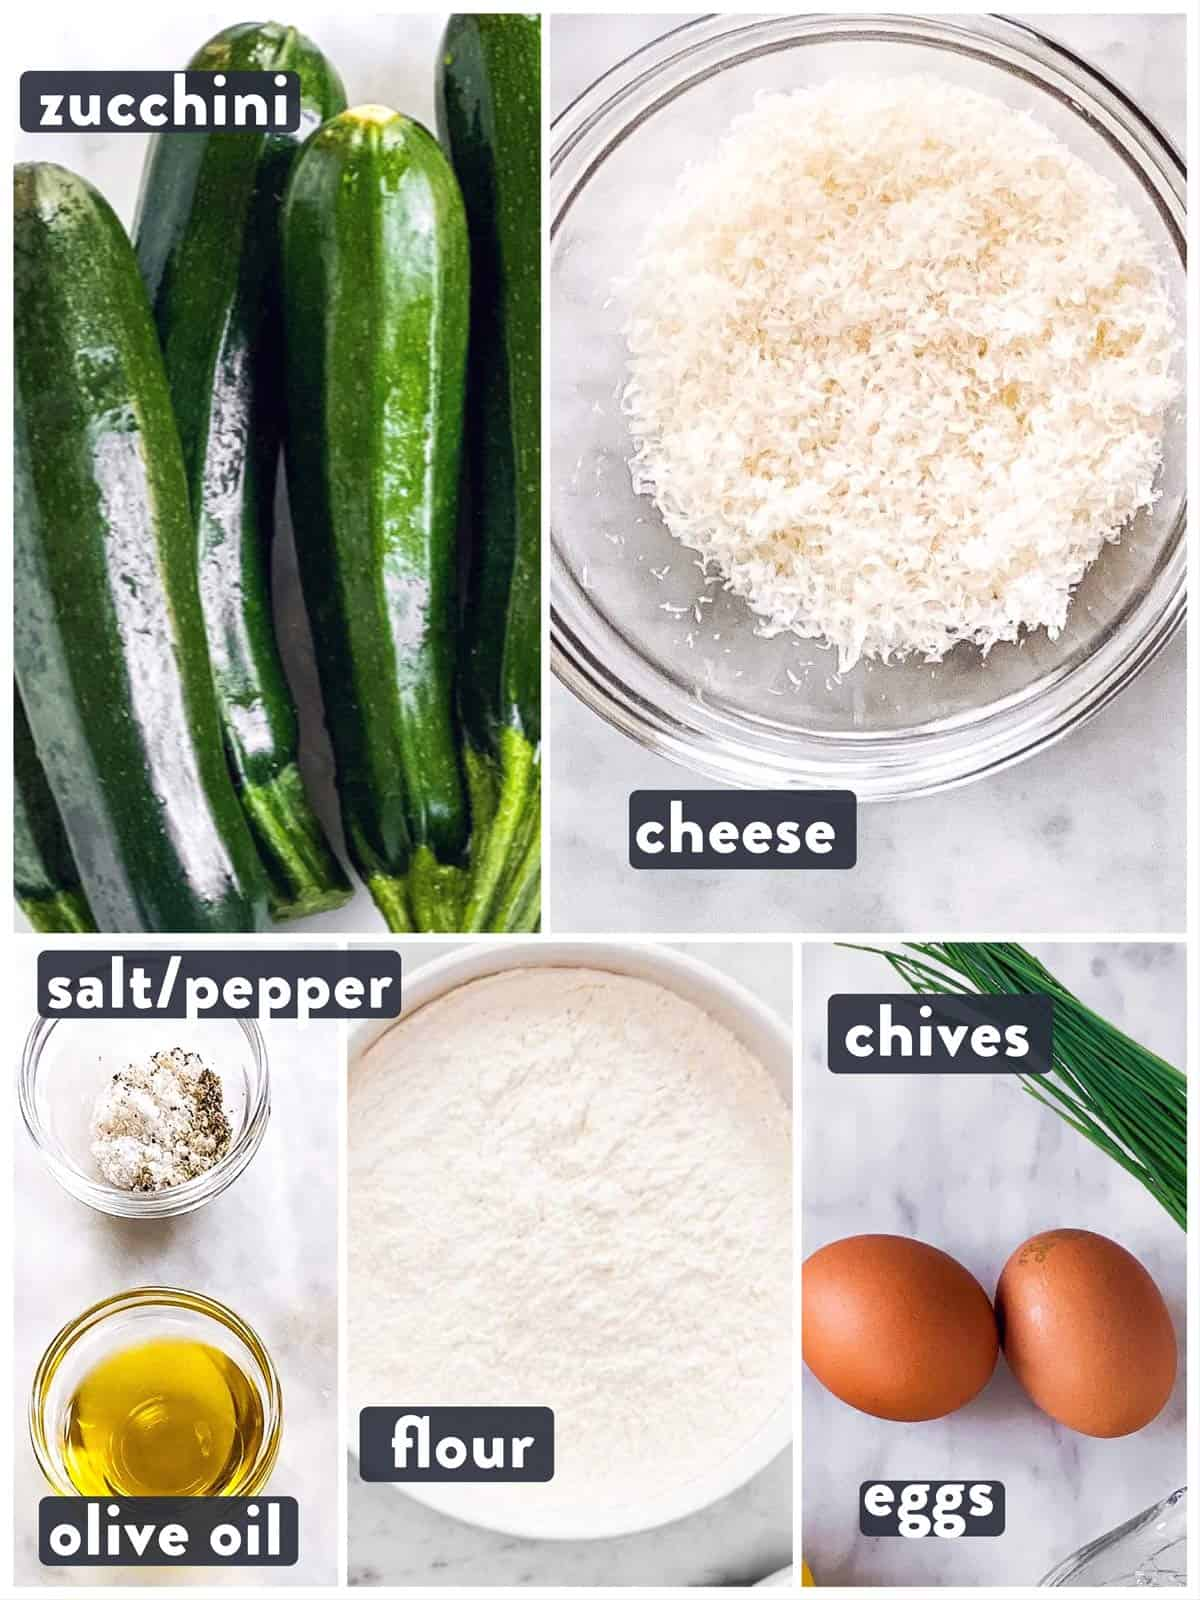 ingredients for zucchini fritters with text labels